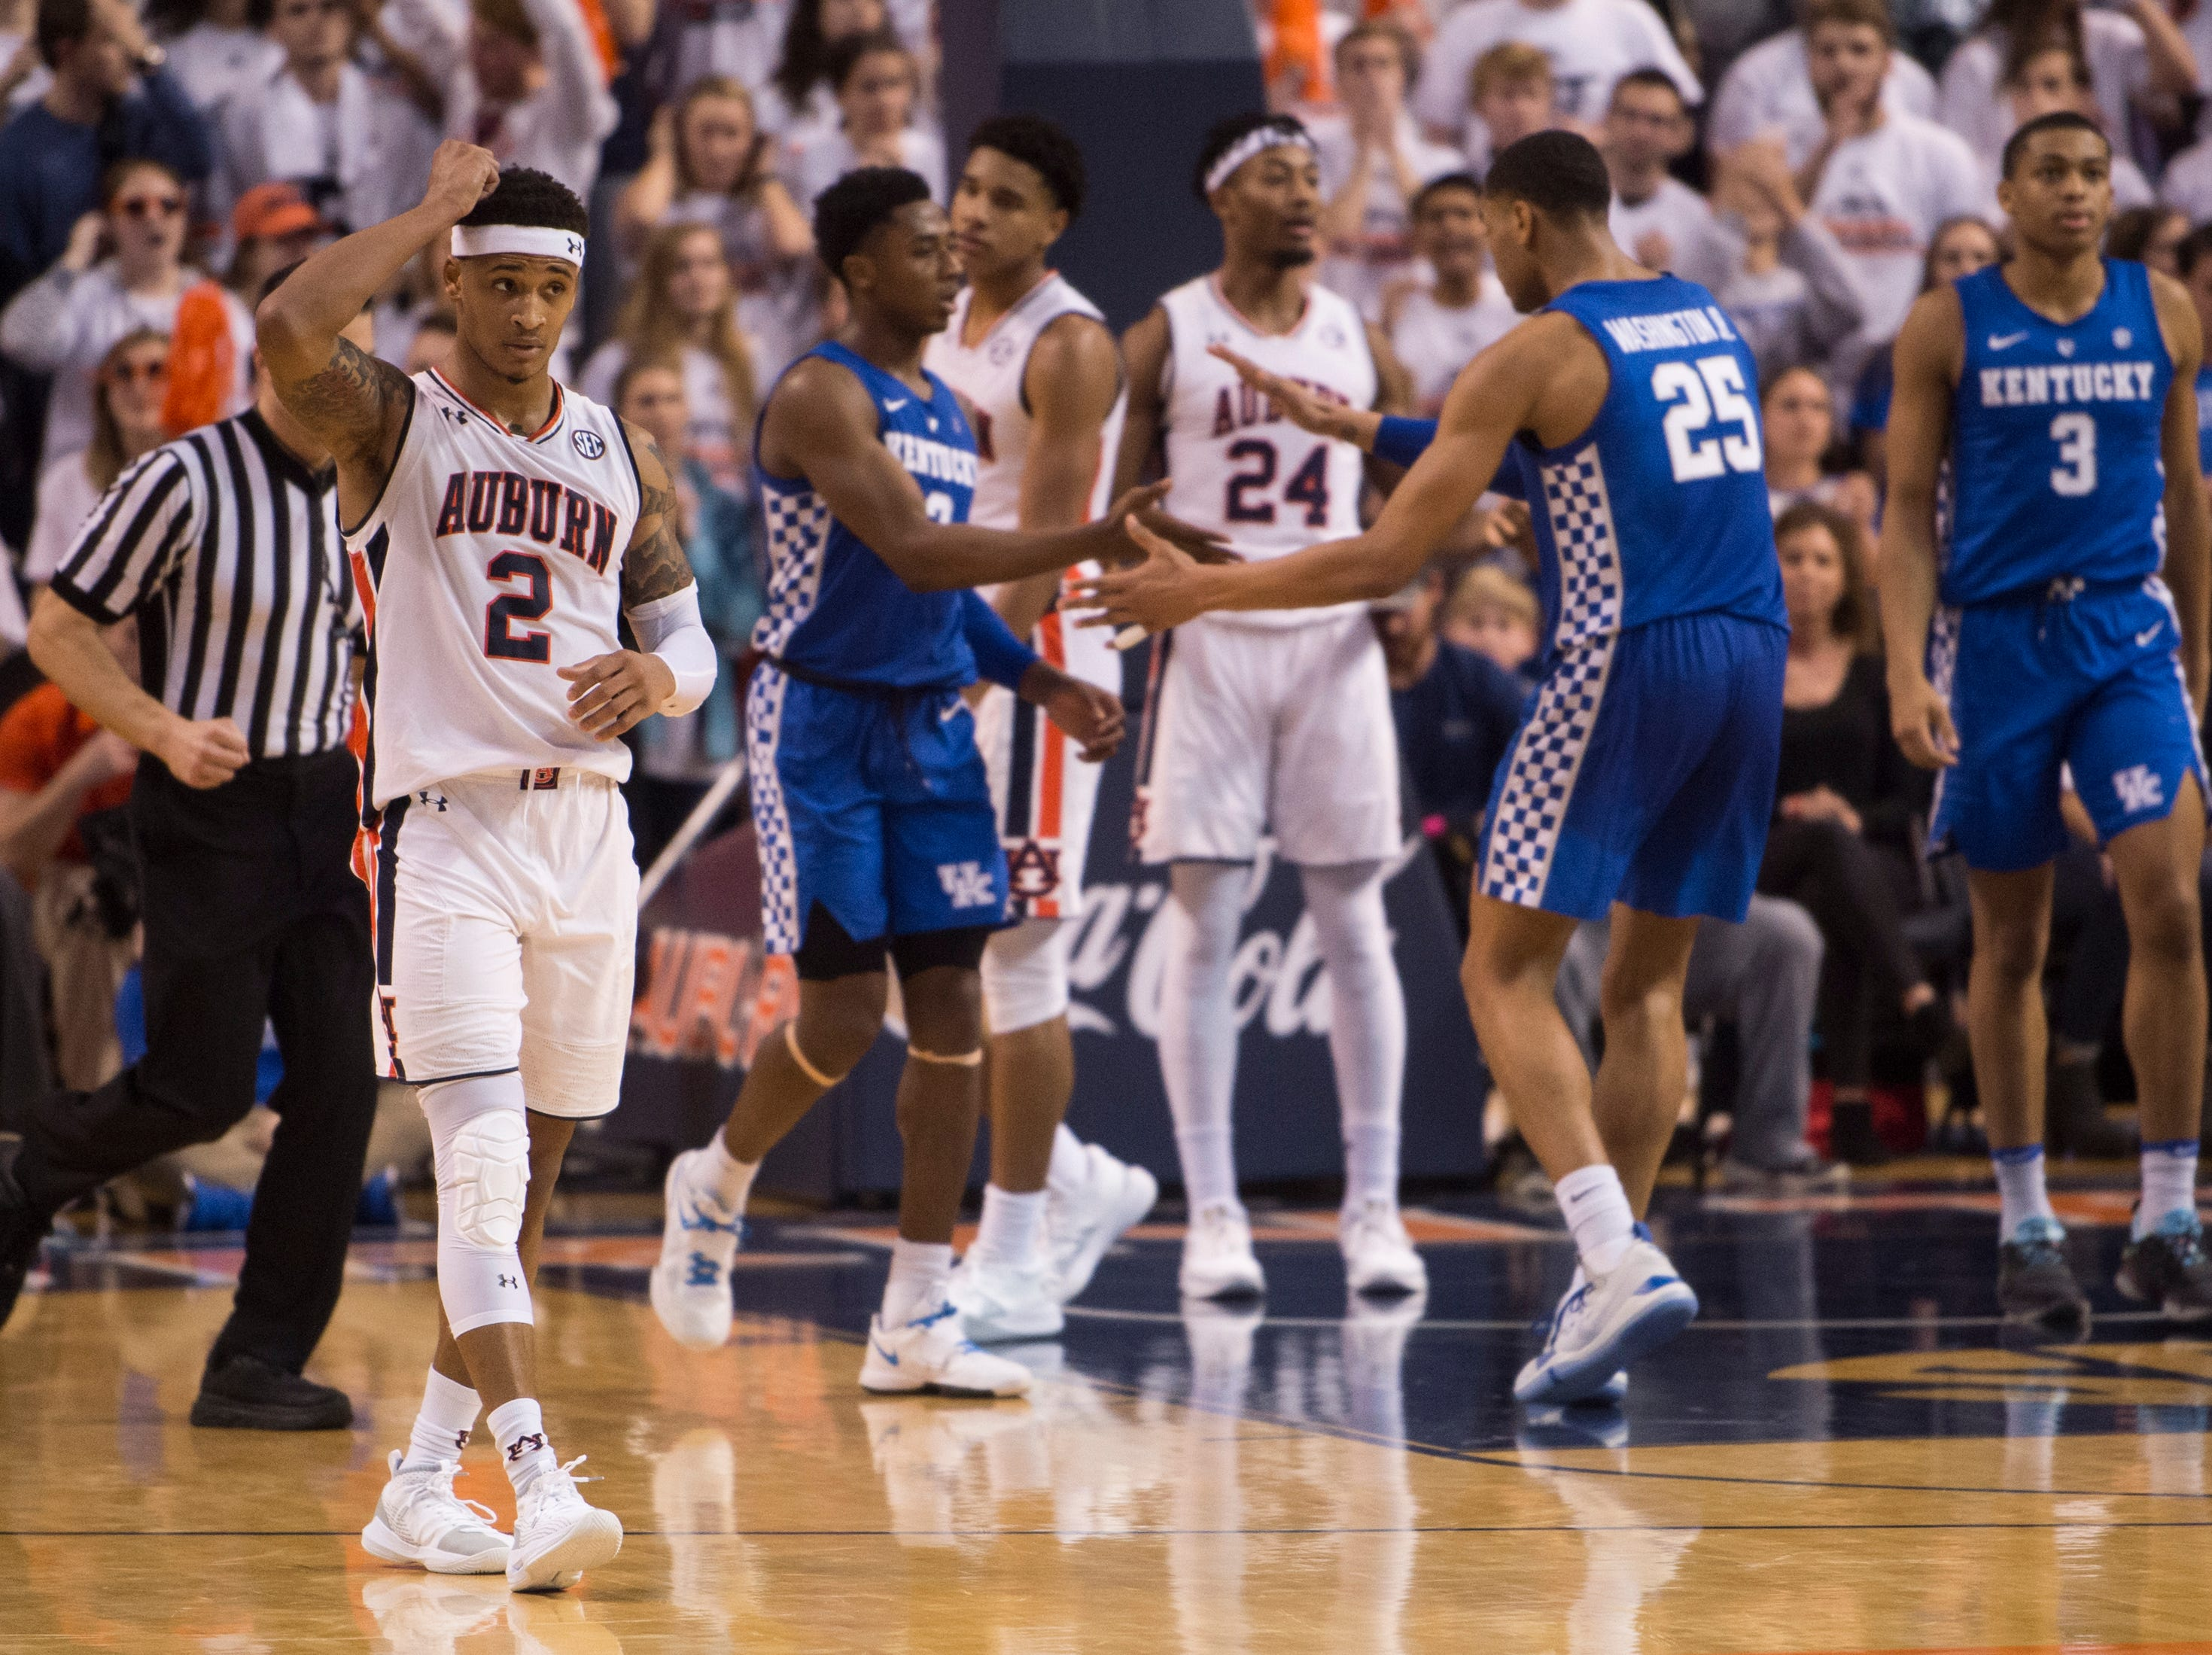 Auburn guard Bryce Brown (2) reacts to a foul call at Auburn Arena in Auburn, Ala., on Saturday, Jan. 19, 2019. Kentucky defeats Auburn 82-80.